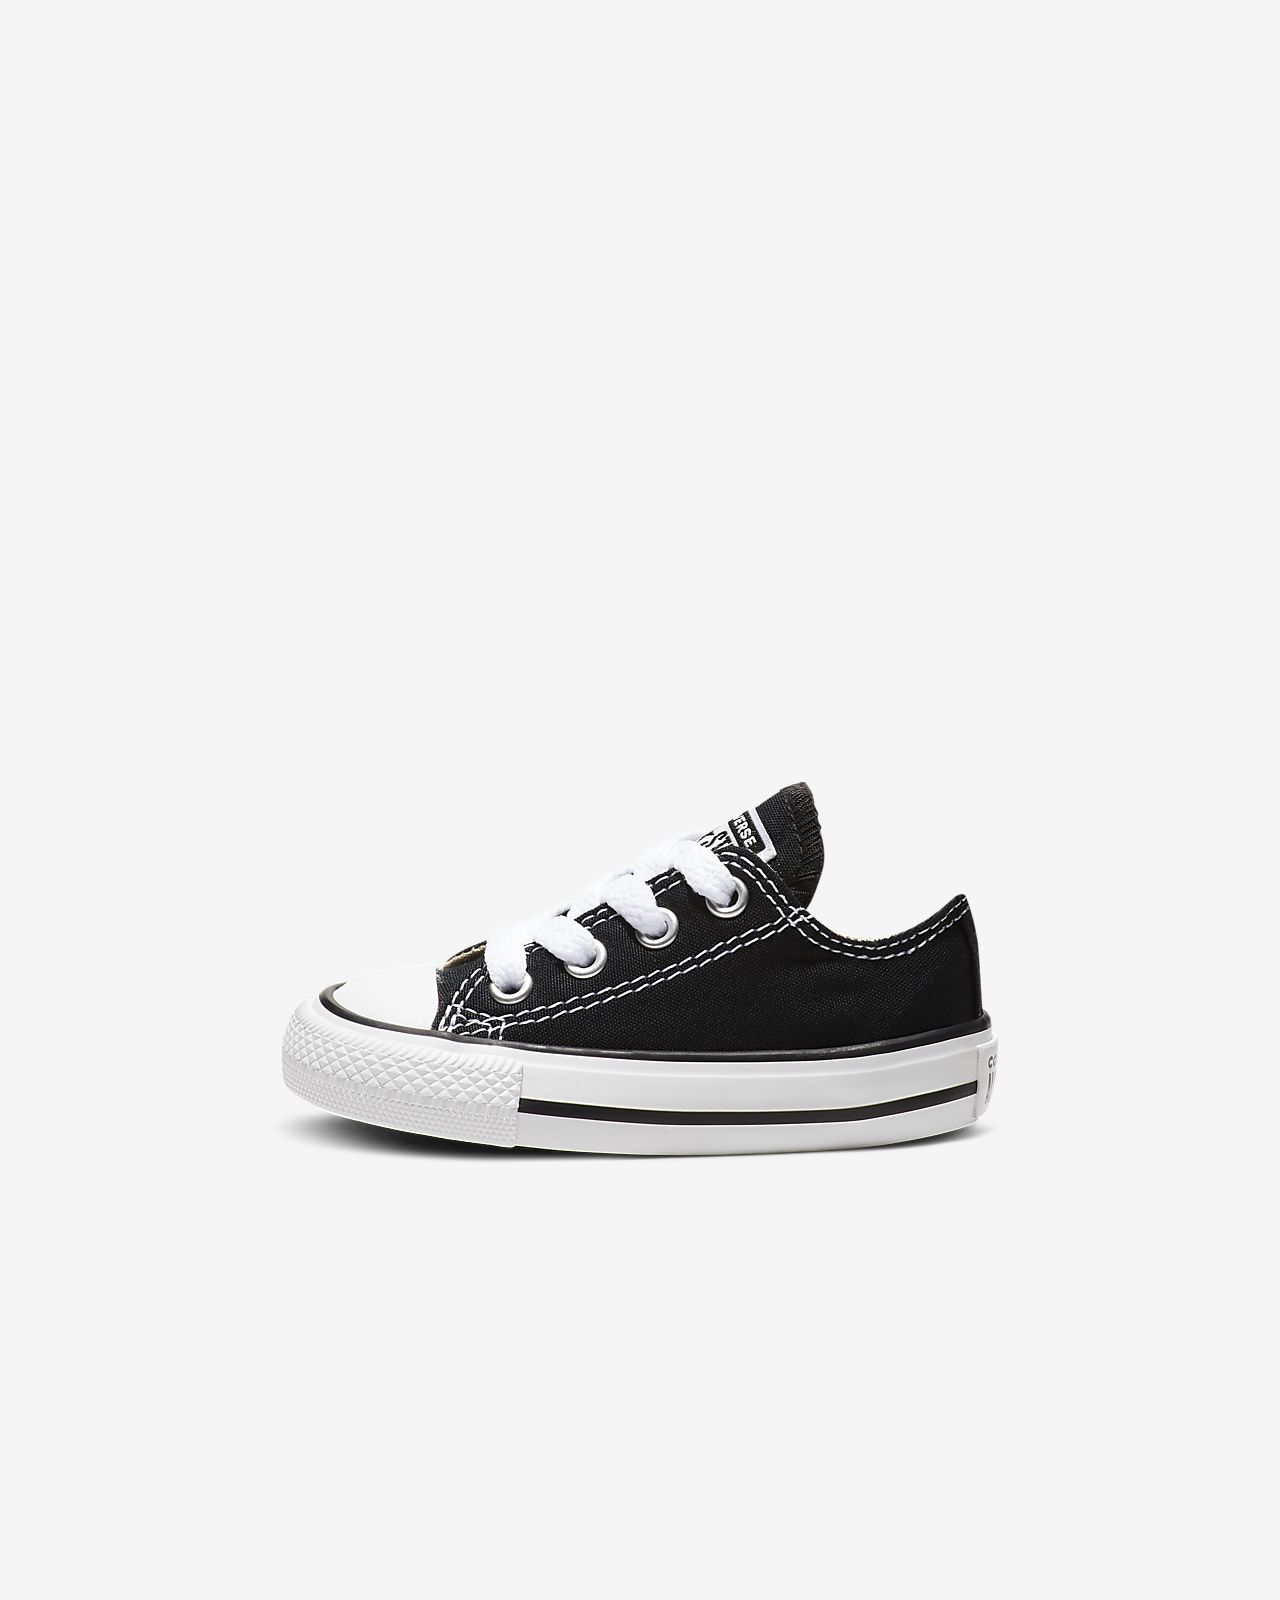 ab7959e6073d Converse Chuck Taylor All Star Low Top Infant Toddler Shoe. Nike.com